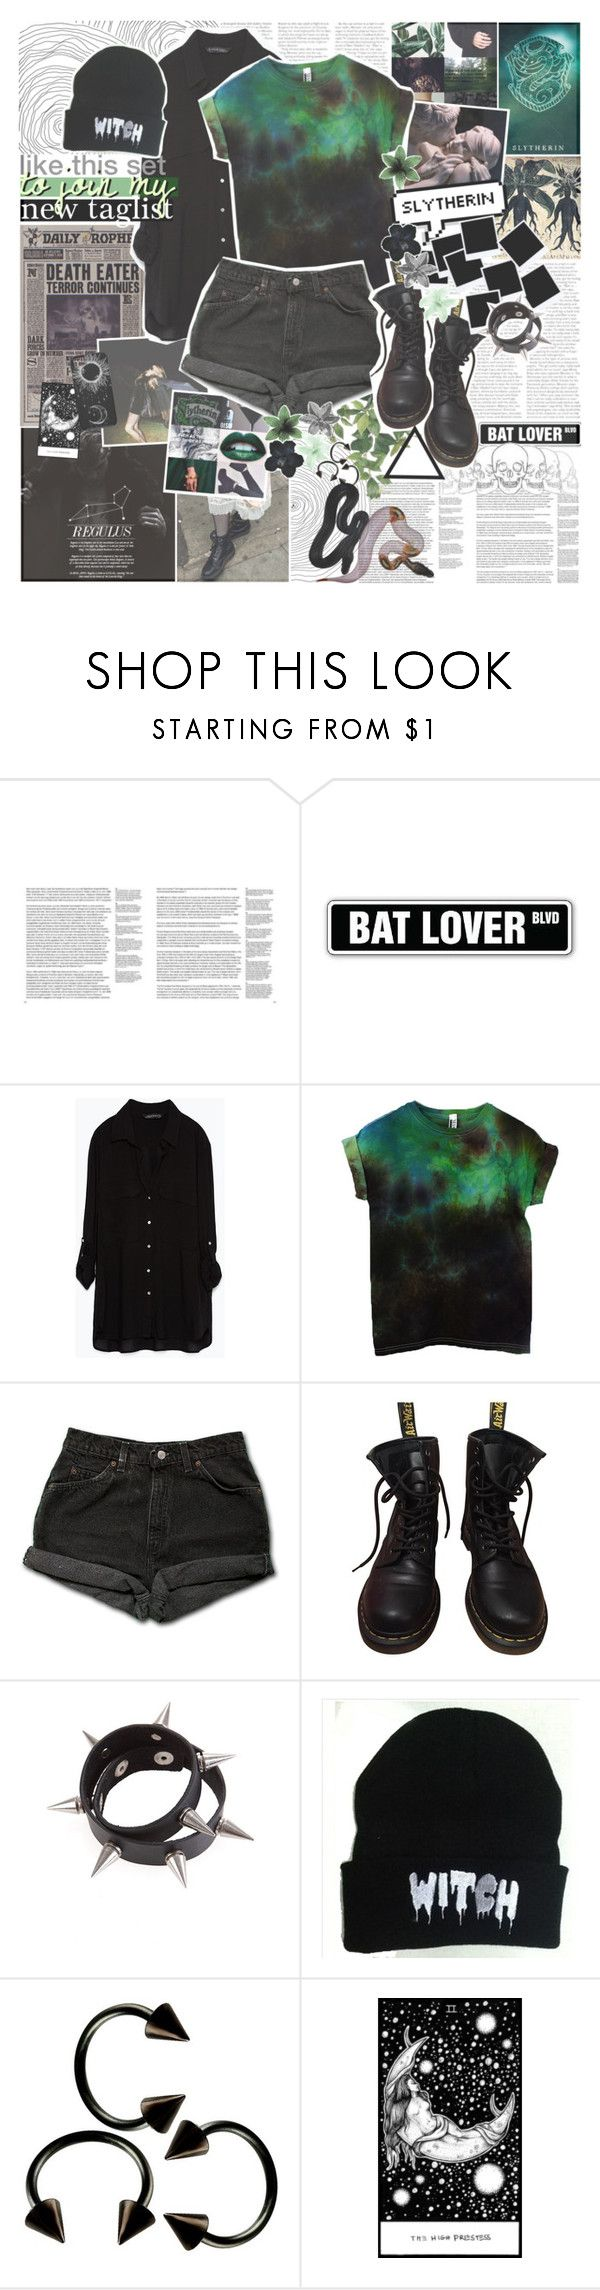 """""""☽ LIKE THIS SET TO JOIN MY NEW TAGLIST // READ DESCRIPTION ☾"""" by i-love-stan-the-man ❤ liked on Polyvore featuring GESTALTEN, GET LOST, Zara, Levi's and Dr. Martens"""